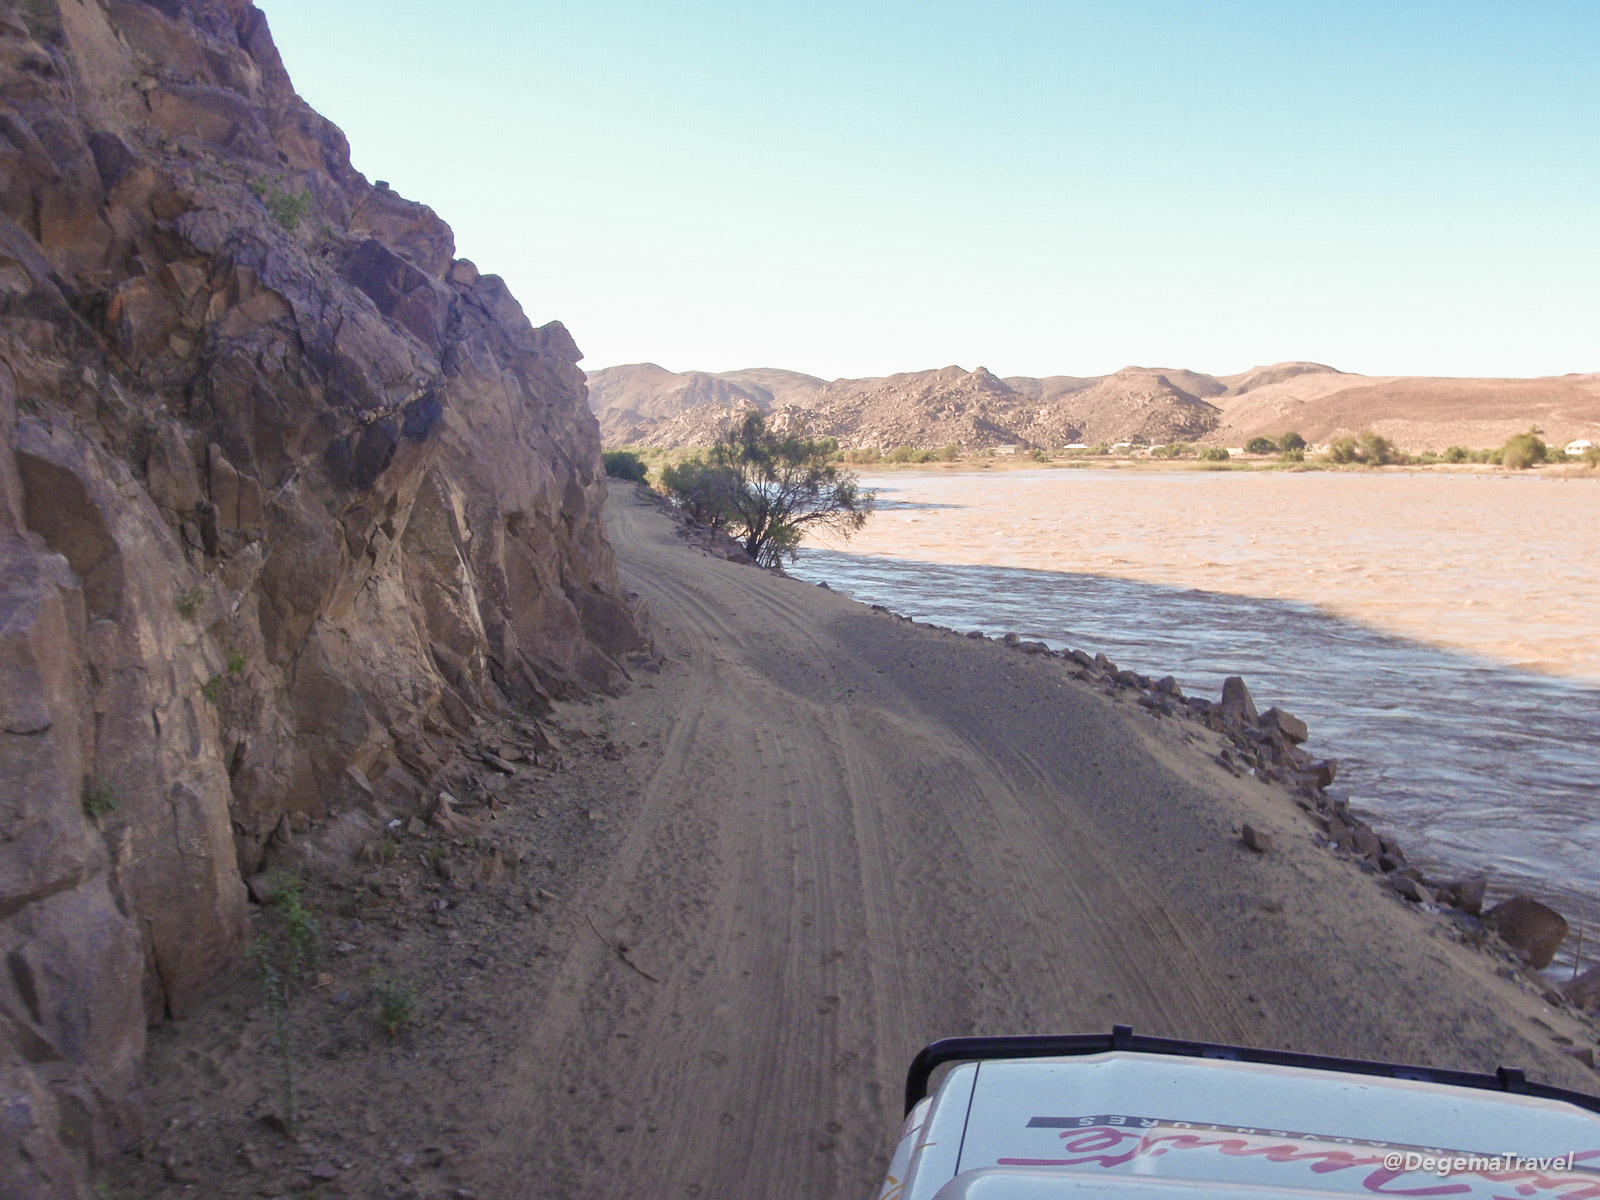 Driving along the banks of the Orange River, Namibia